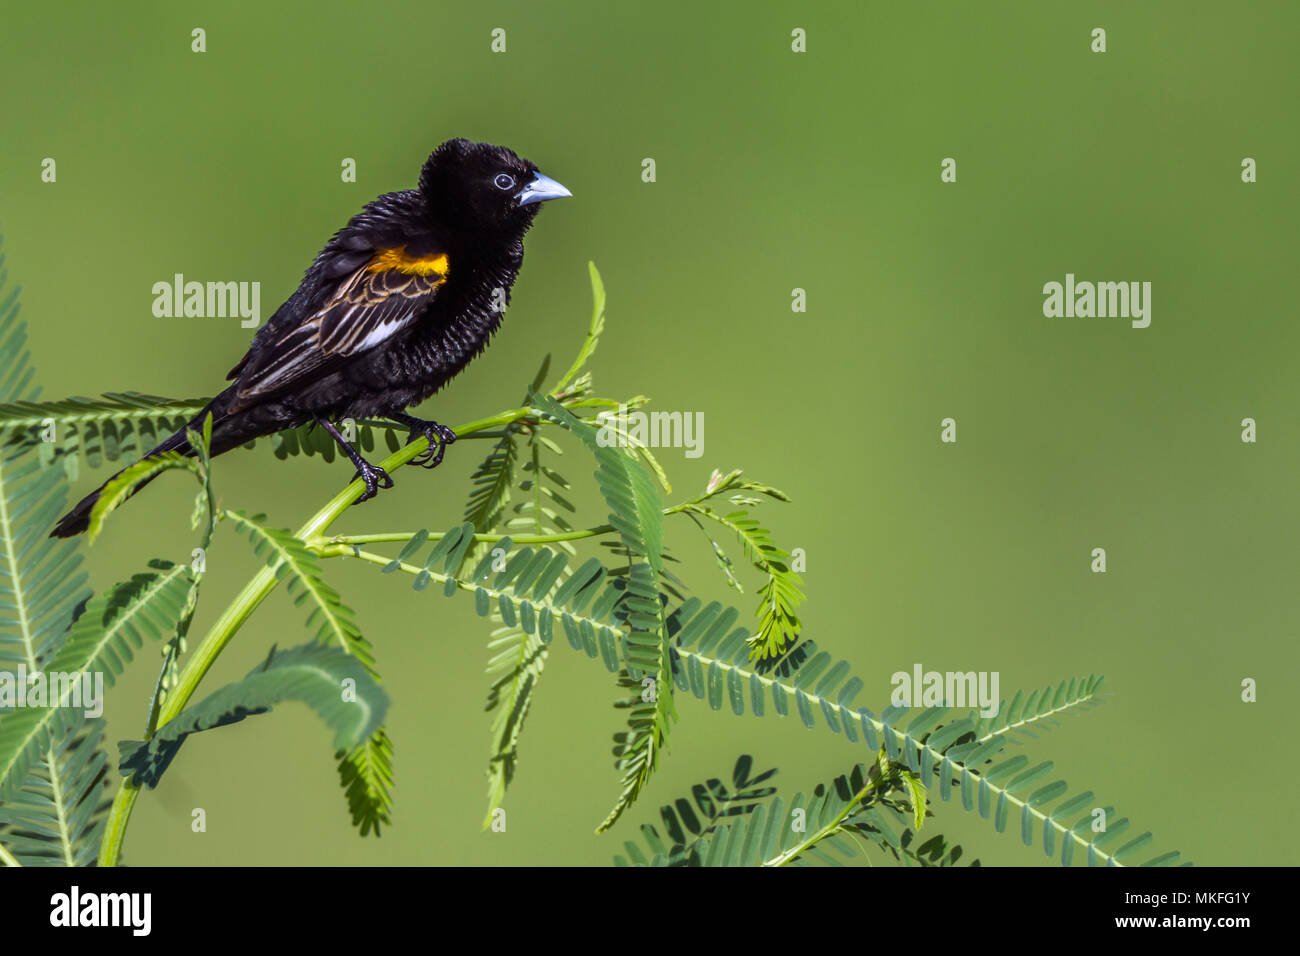 White winged Widowbird (Euplectes albonotatus) on a branch, Kruger National park, South Africa - Stock Image